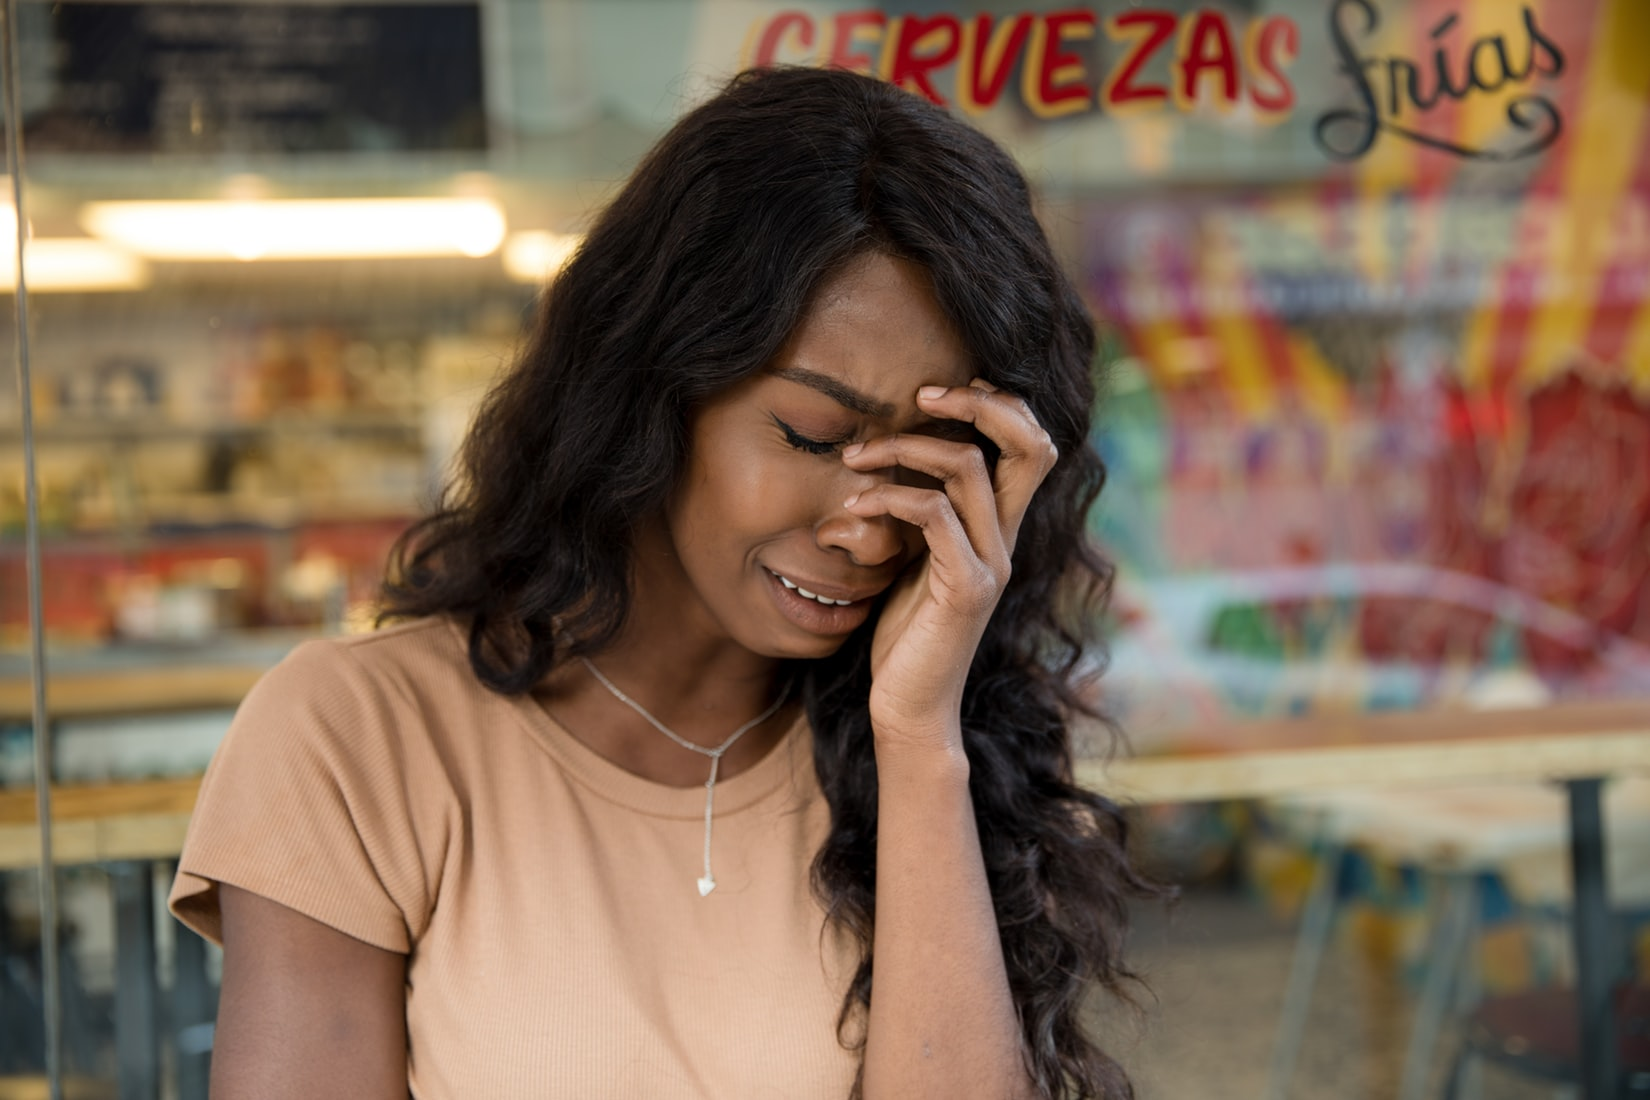 Sad black woman crying with hand on face